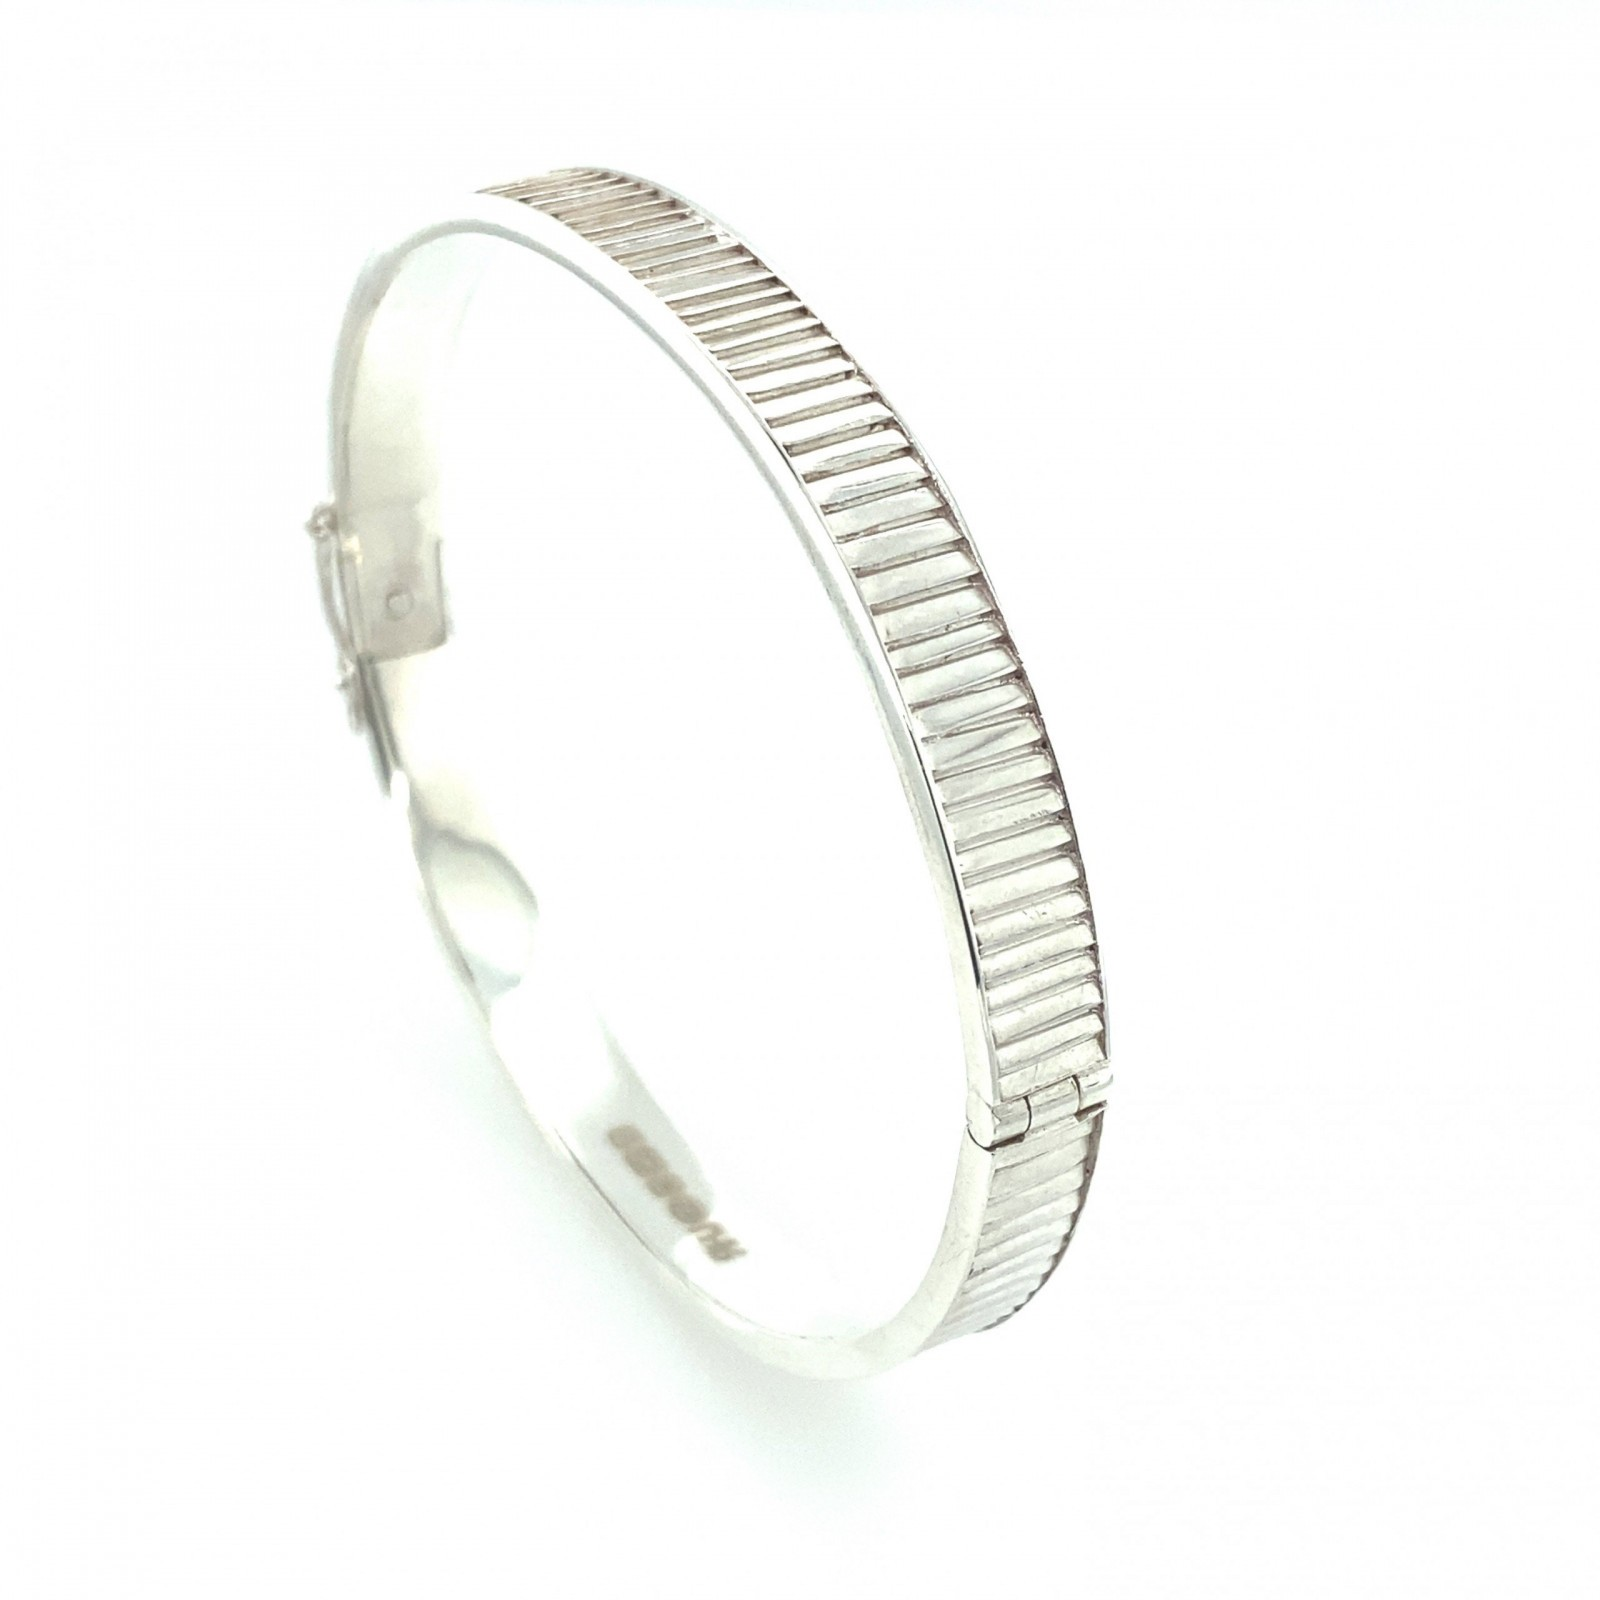 Silver Bangle by Sheffield Silversmith and Jeweller Rebecca Joselyn